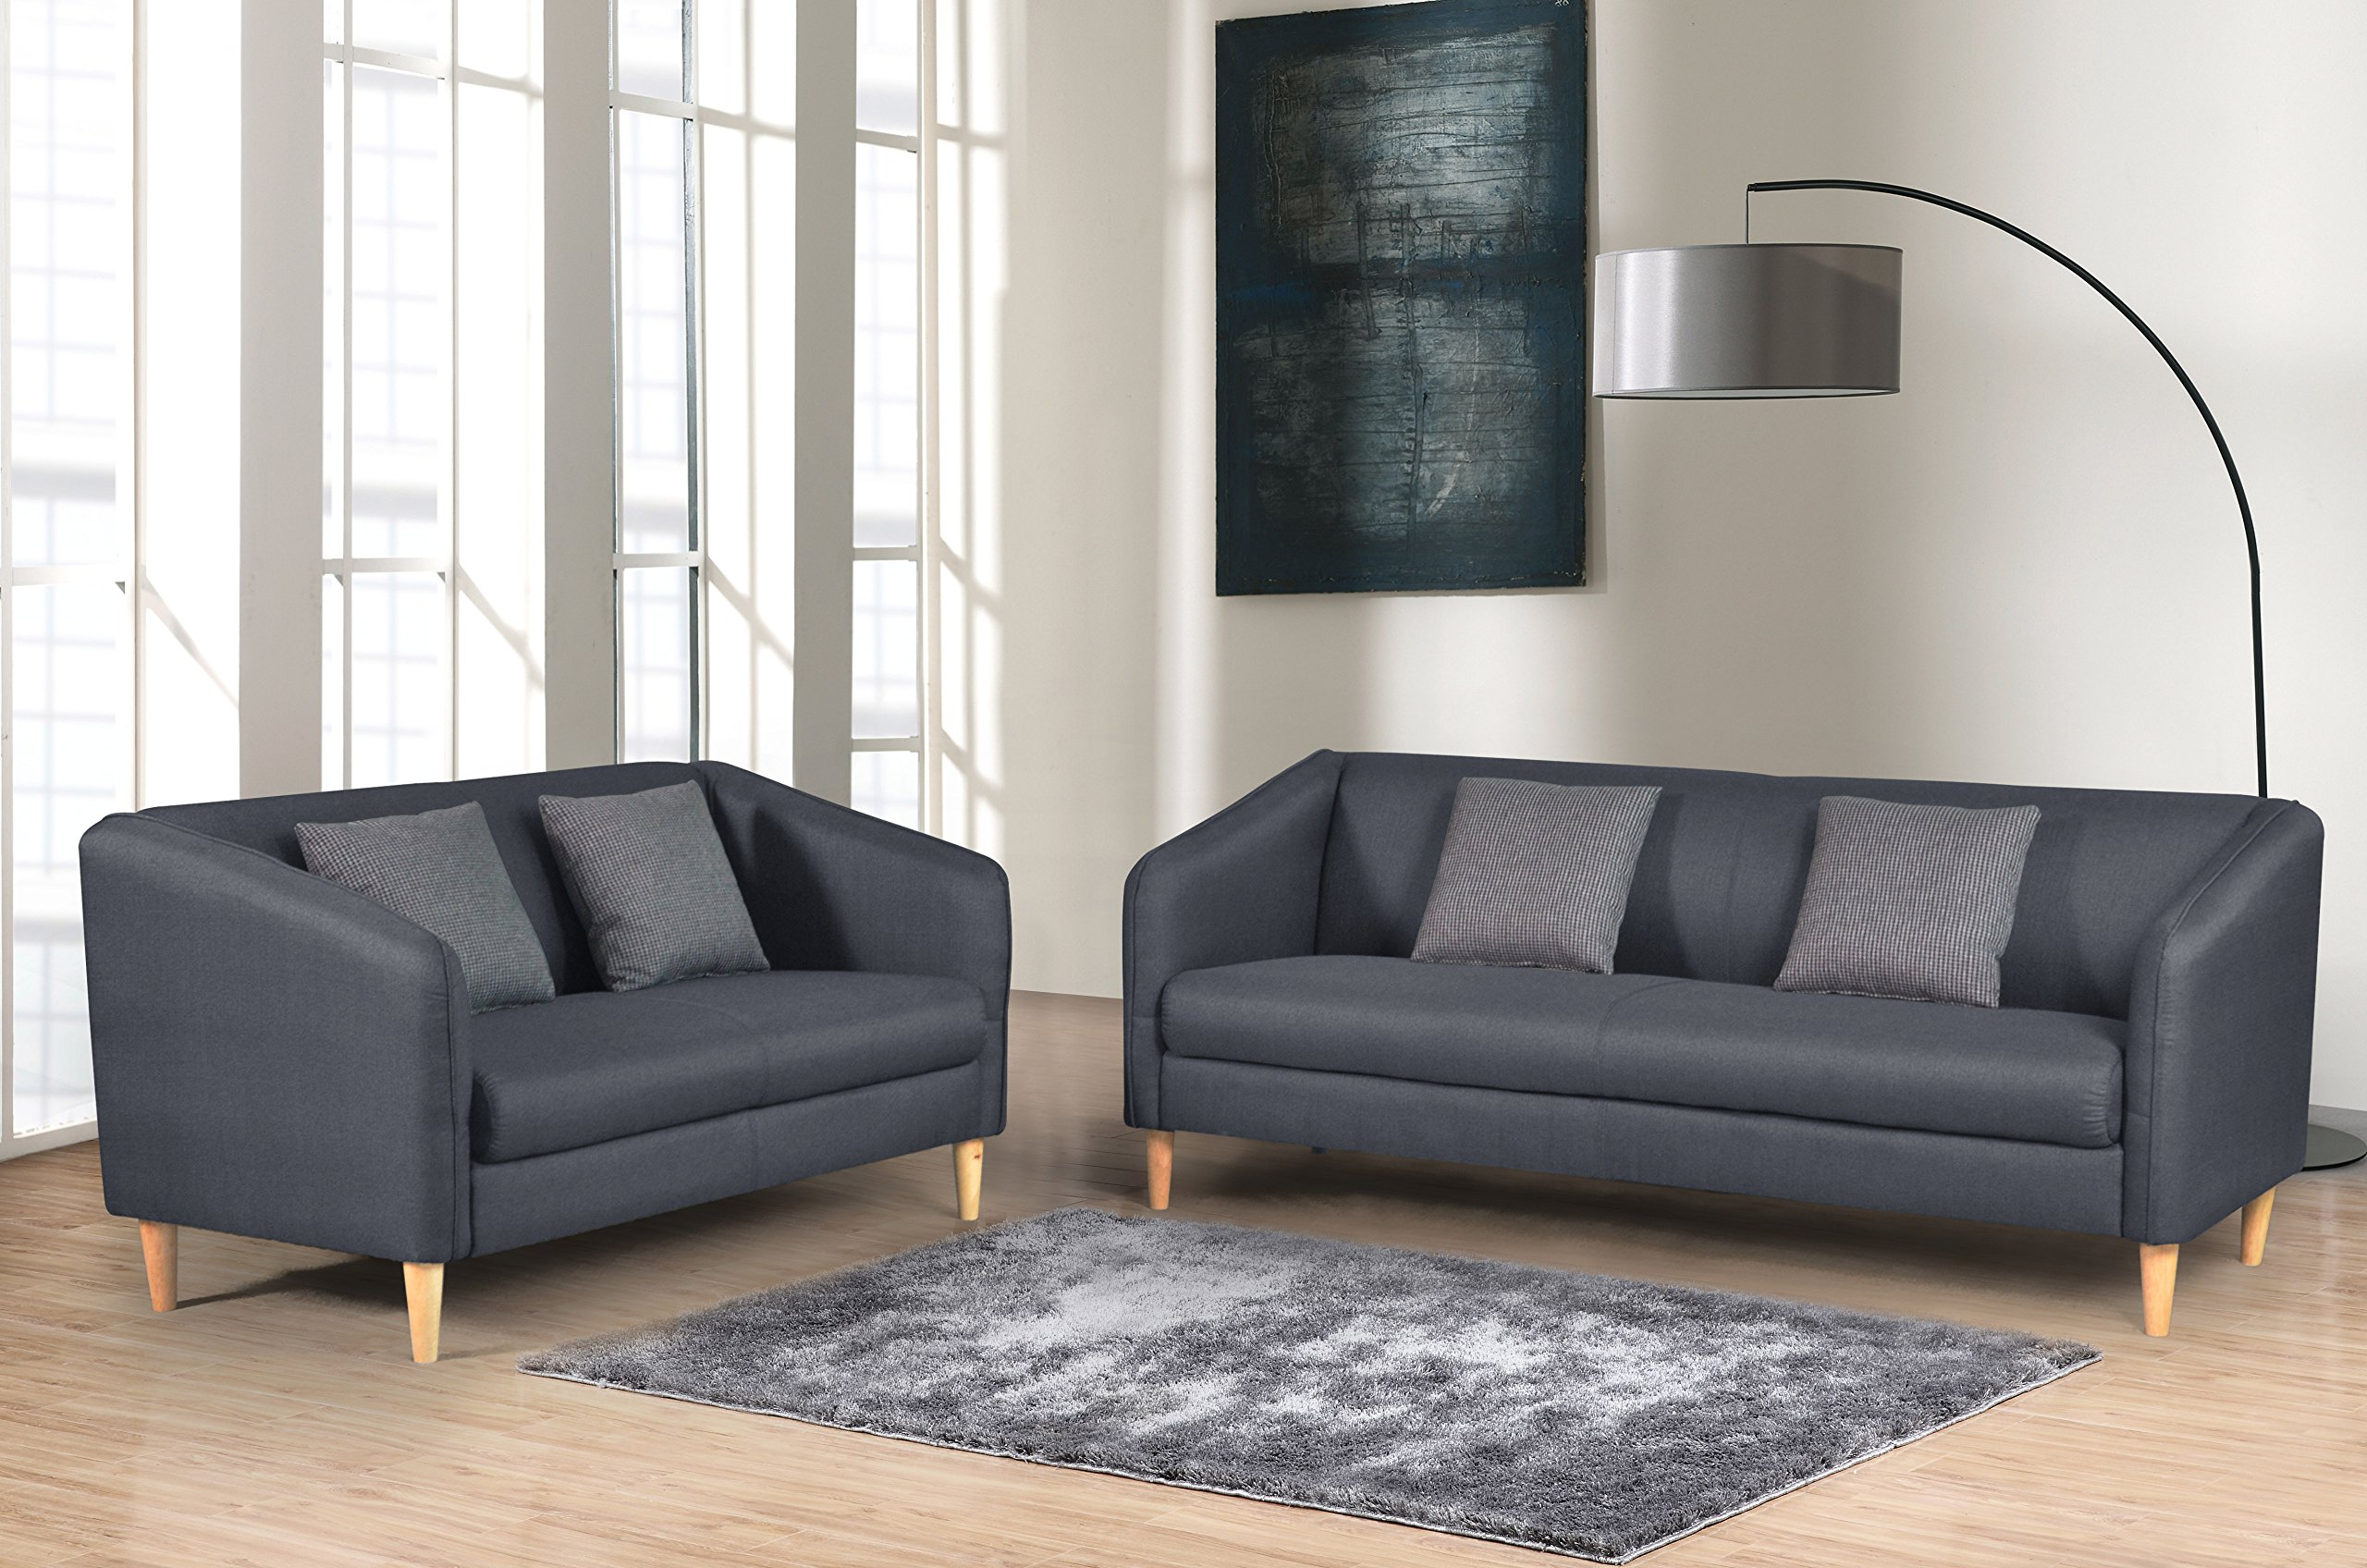 Container Furniture Direct Helton Collection 2 Piece Collection Modern Reversible Fabric Living Room Sofa Set, Dark Grey